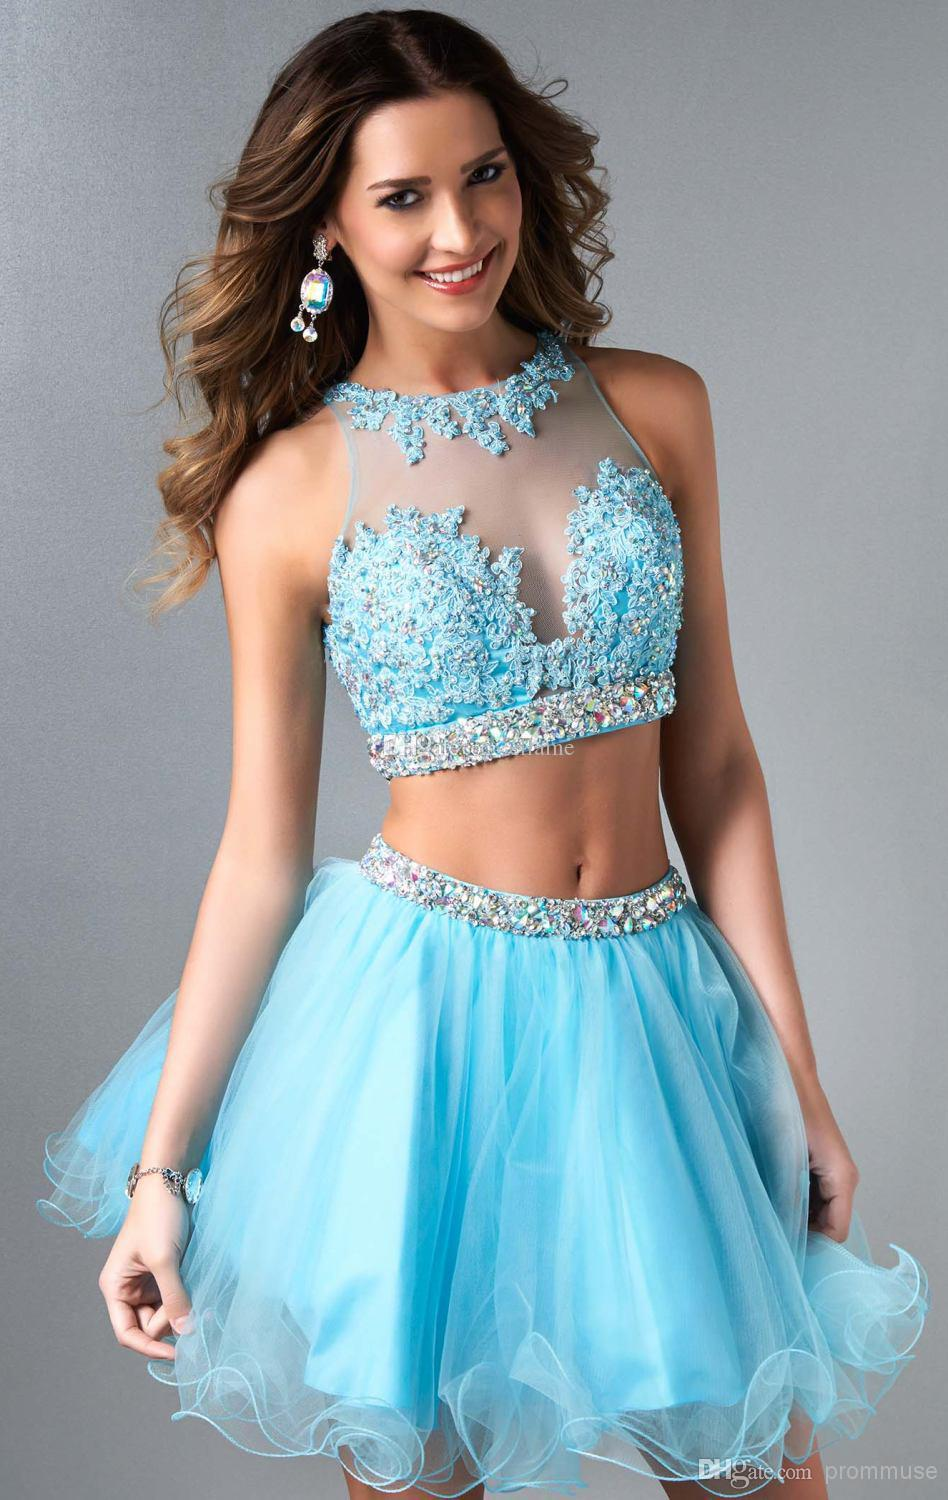 8a47365a9d45 Brand New 2015 Two Piece Short Prom Dress Cheap Sheer Neck Appliques Beads  Crystal Ball Gown Homecoming Dresses Girls' Party Gown Under $100